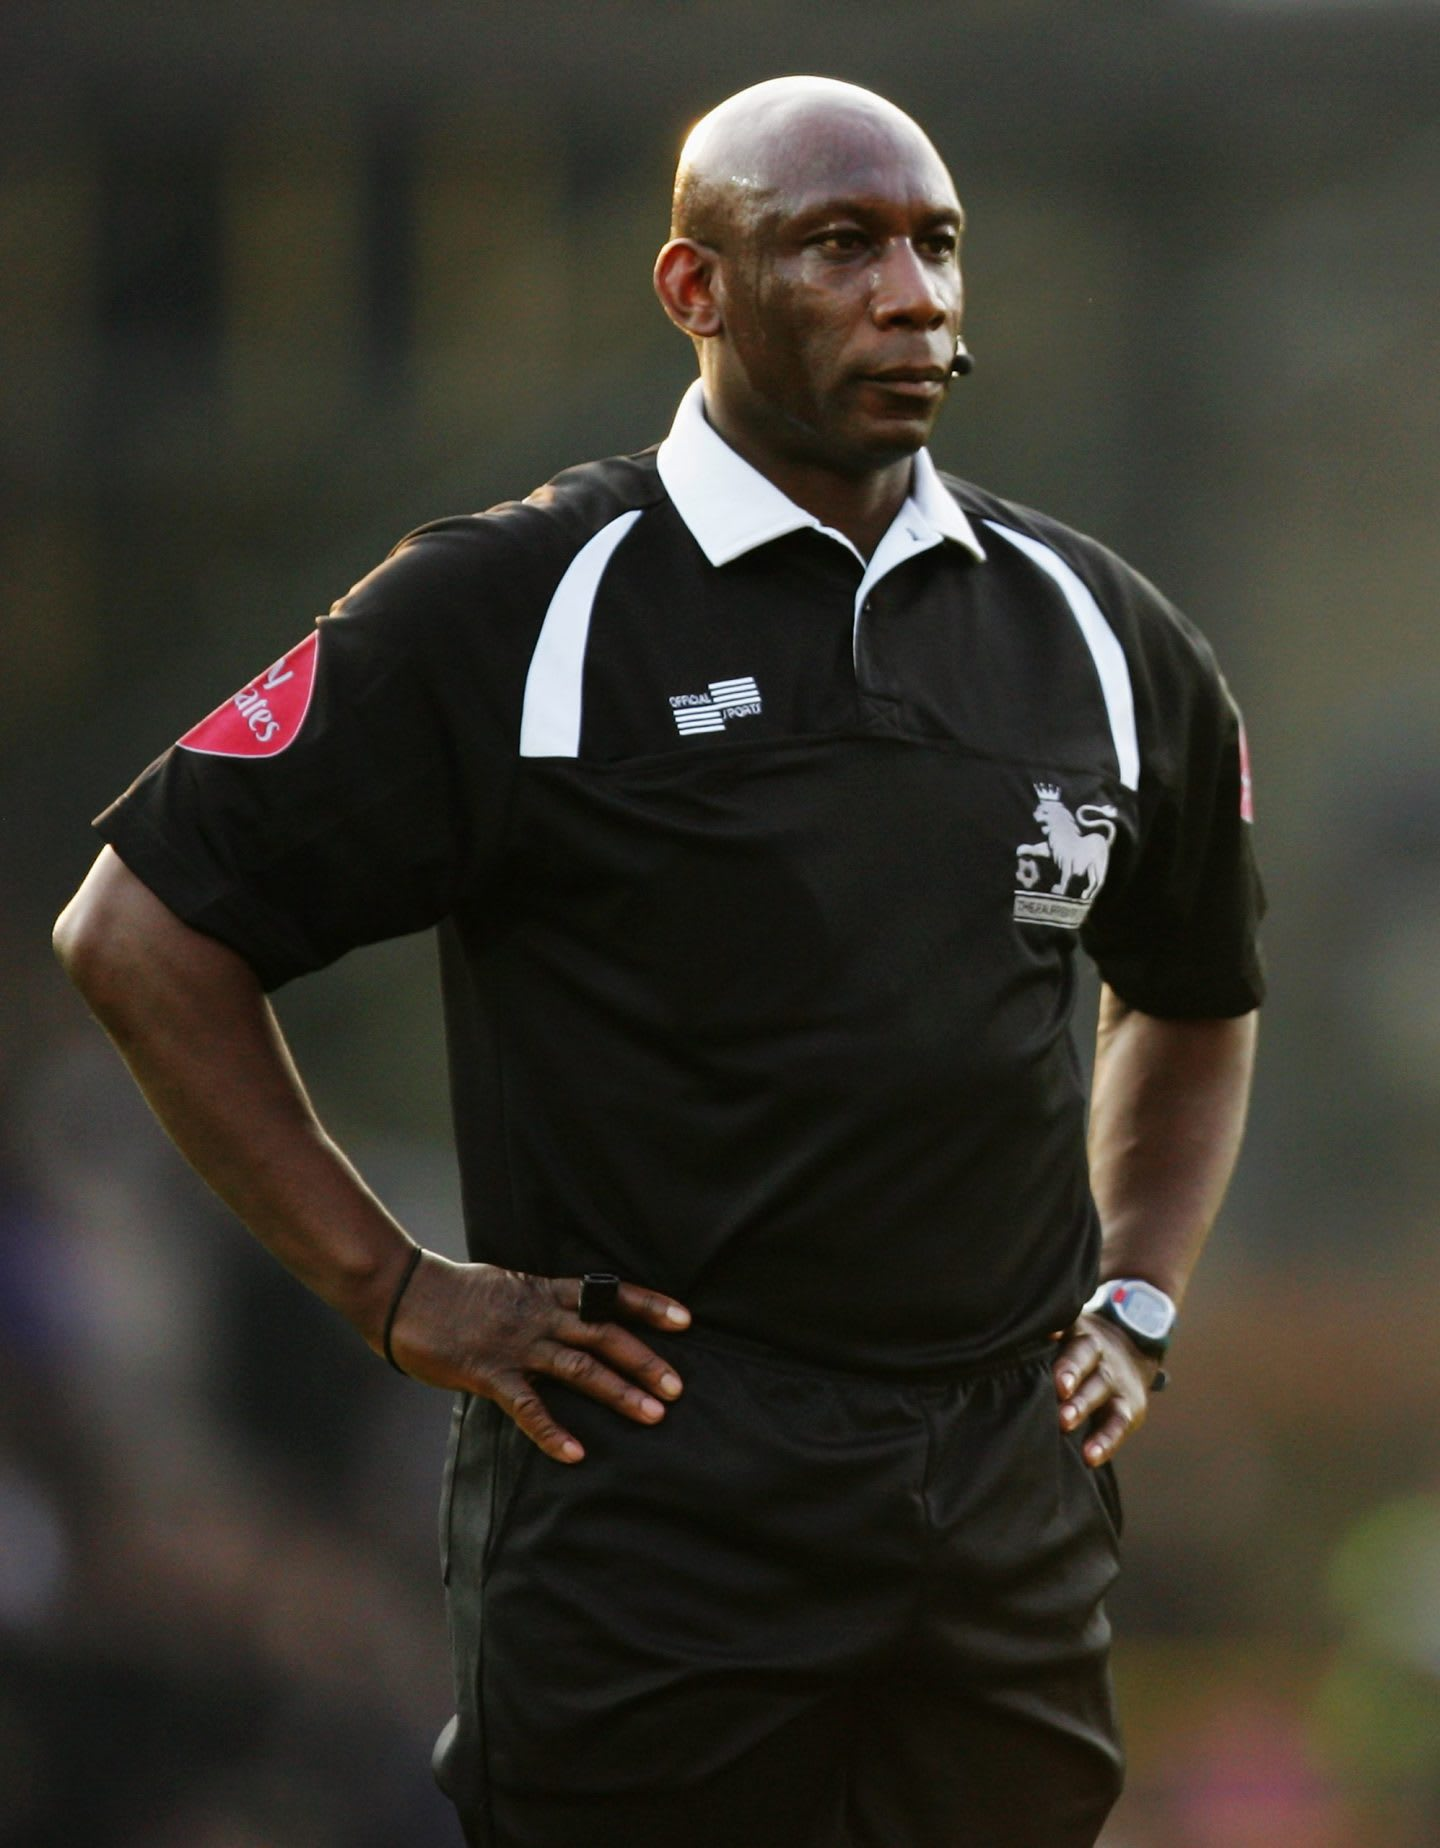 Match referee Uriah Rennie during the Barclays Premiership match between Watford and Chelsea at Vicarage Road, referee, umpire, football, England, Chelsea, Watford